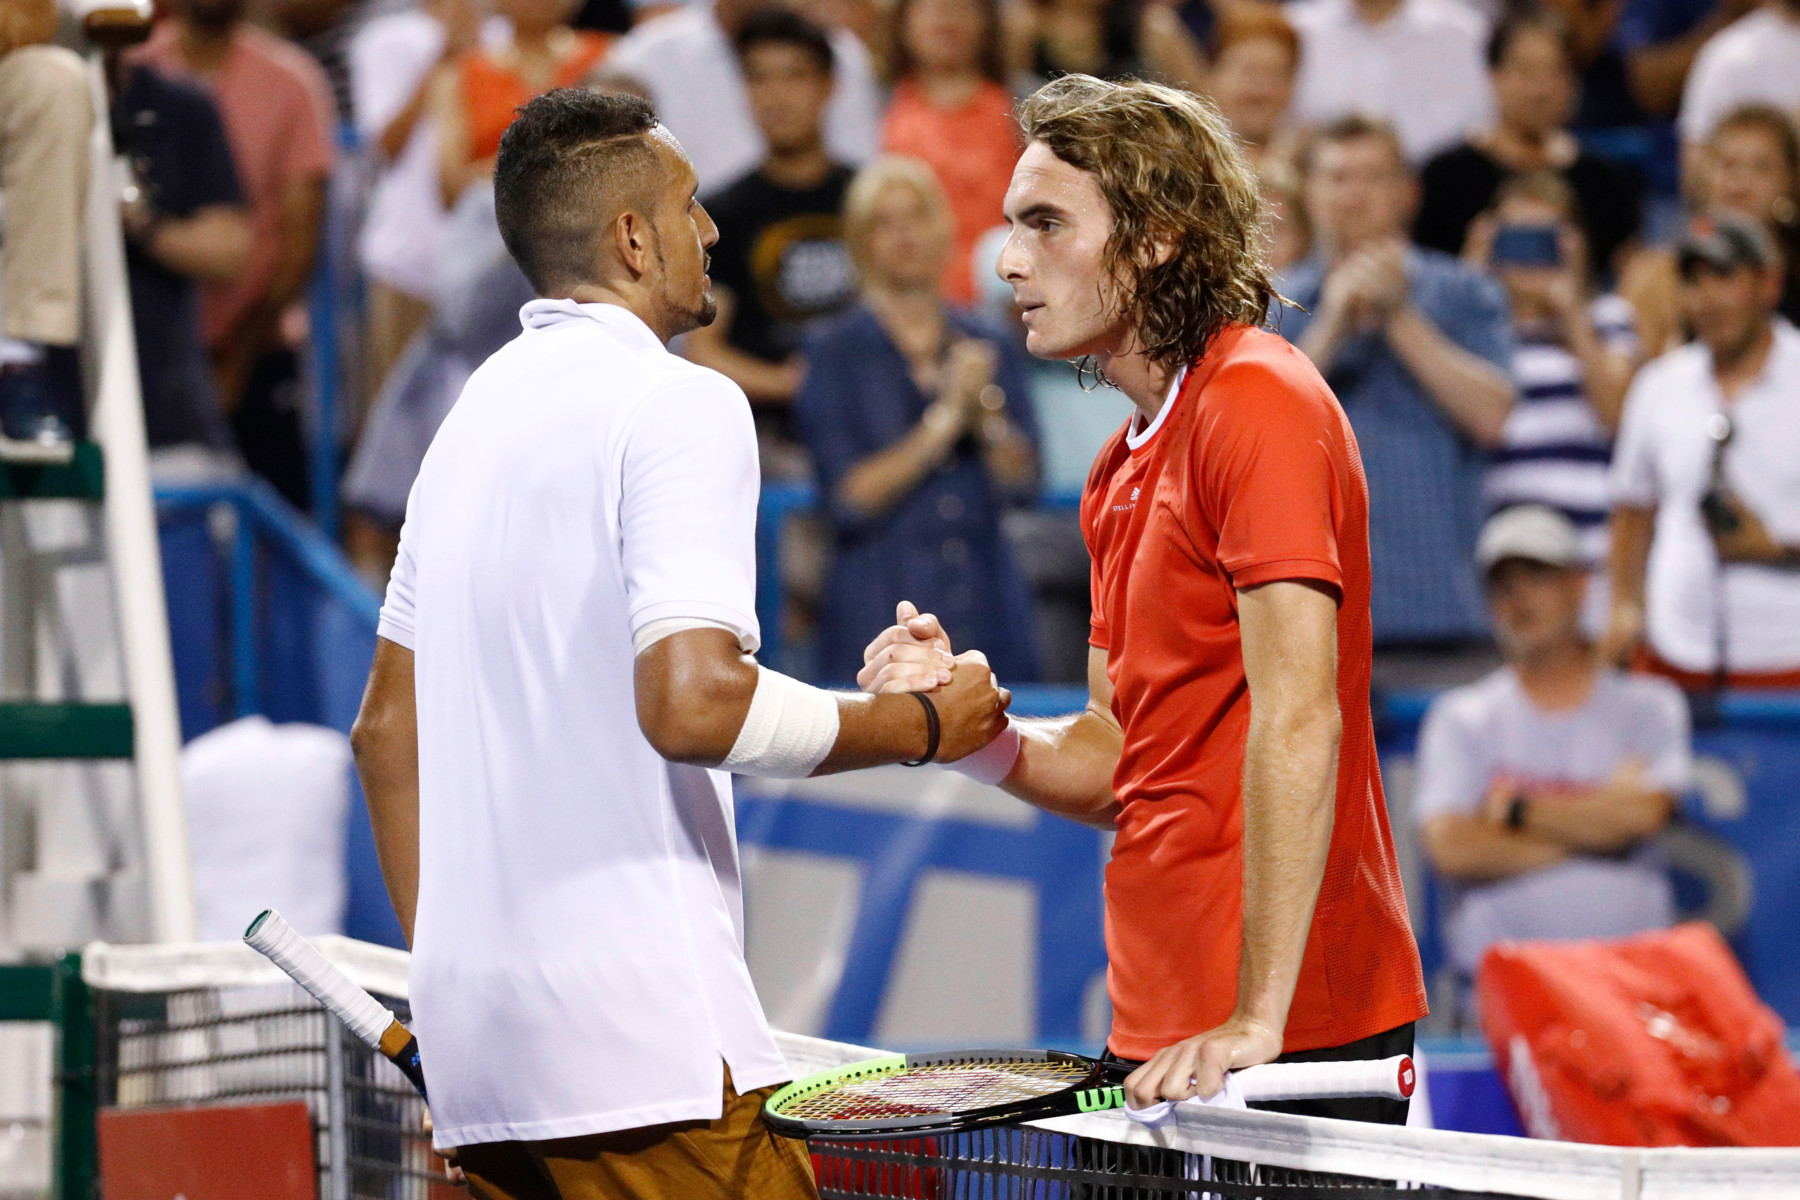 Kyrgios, whose dad is Greek, has a 2-0 pro record against the 21-year-old but took a big defeat on Monday